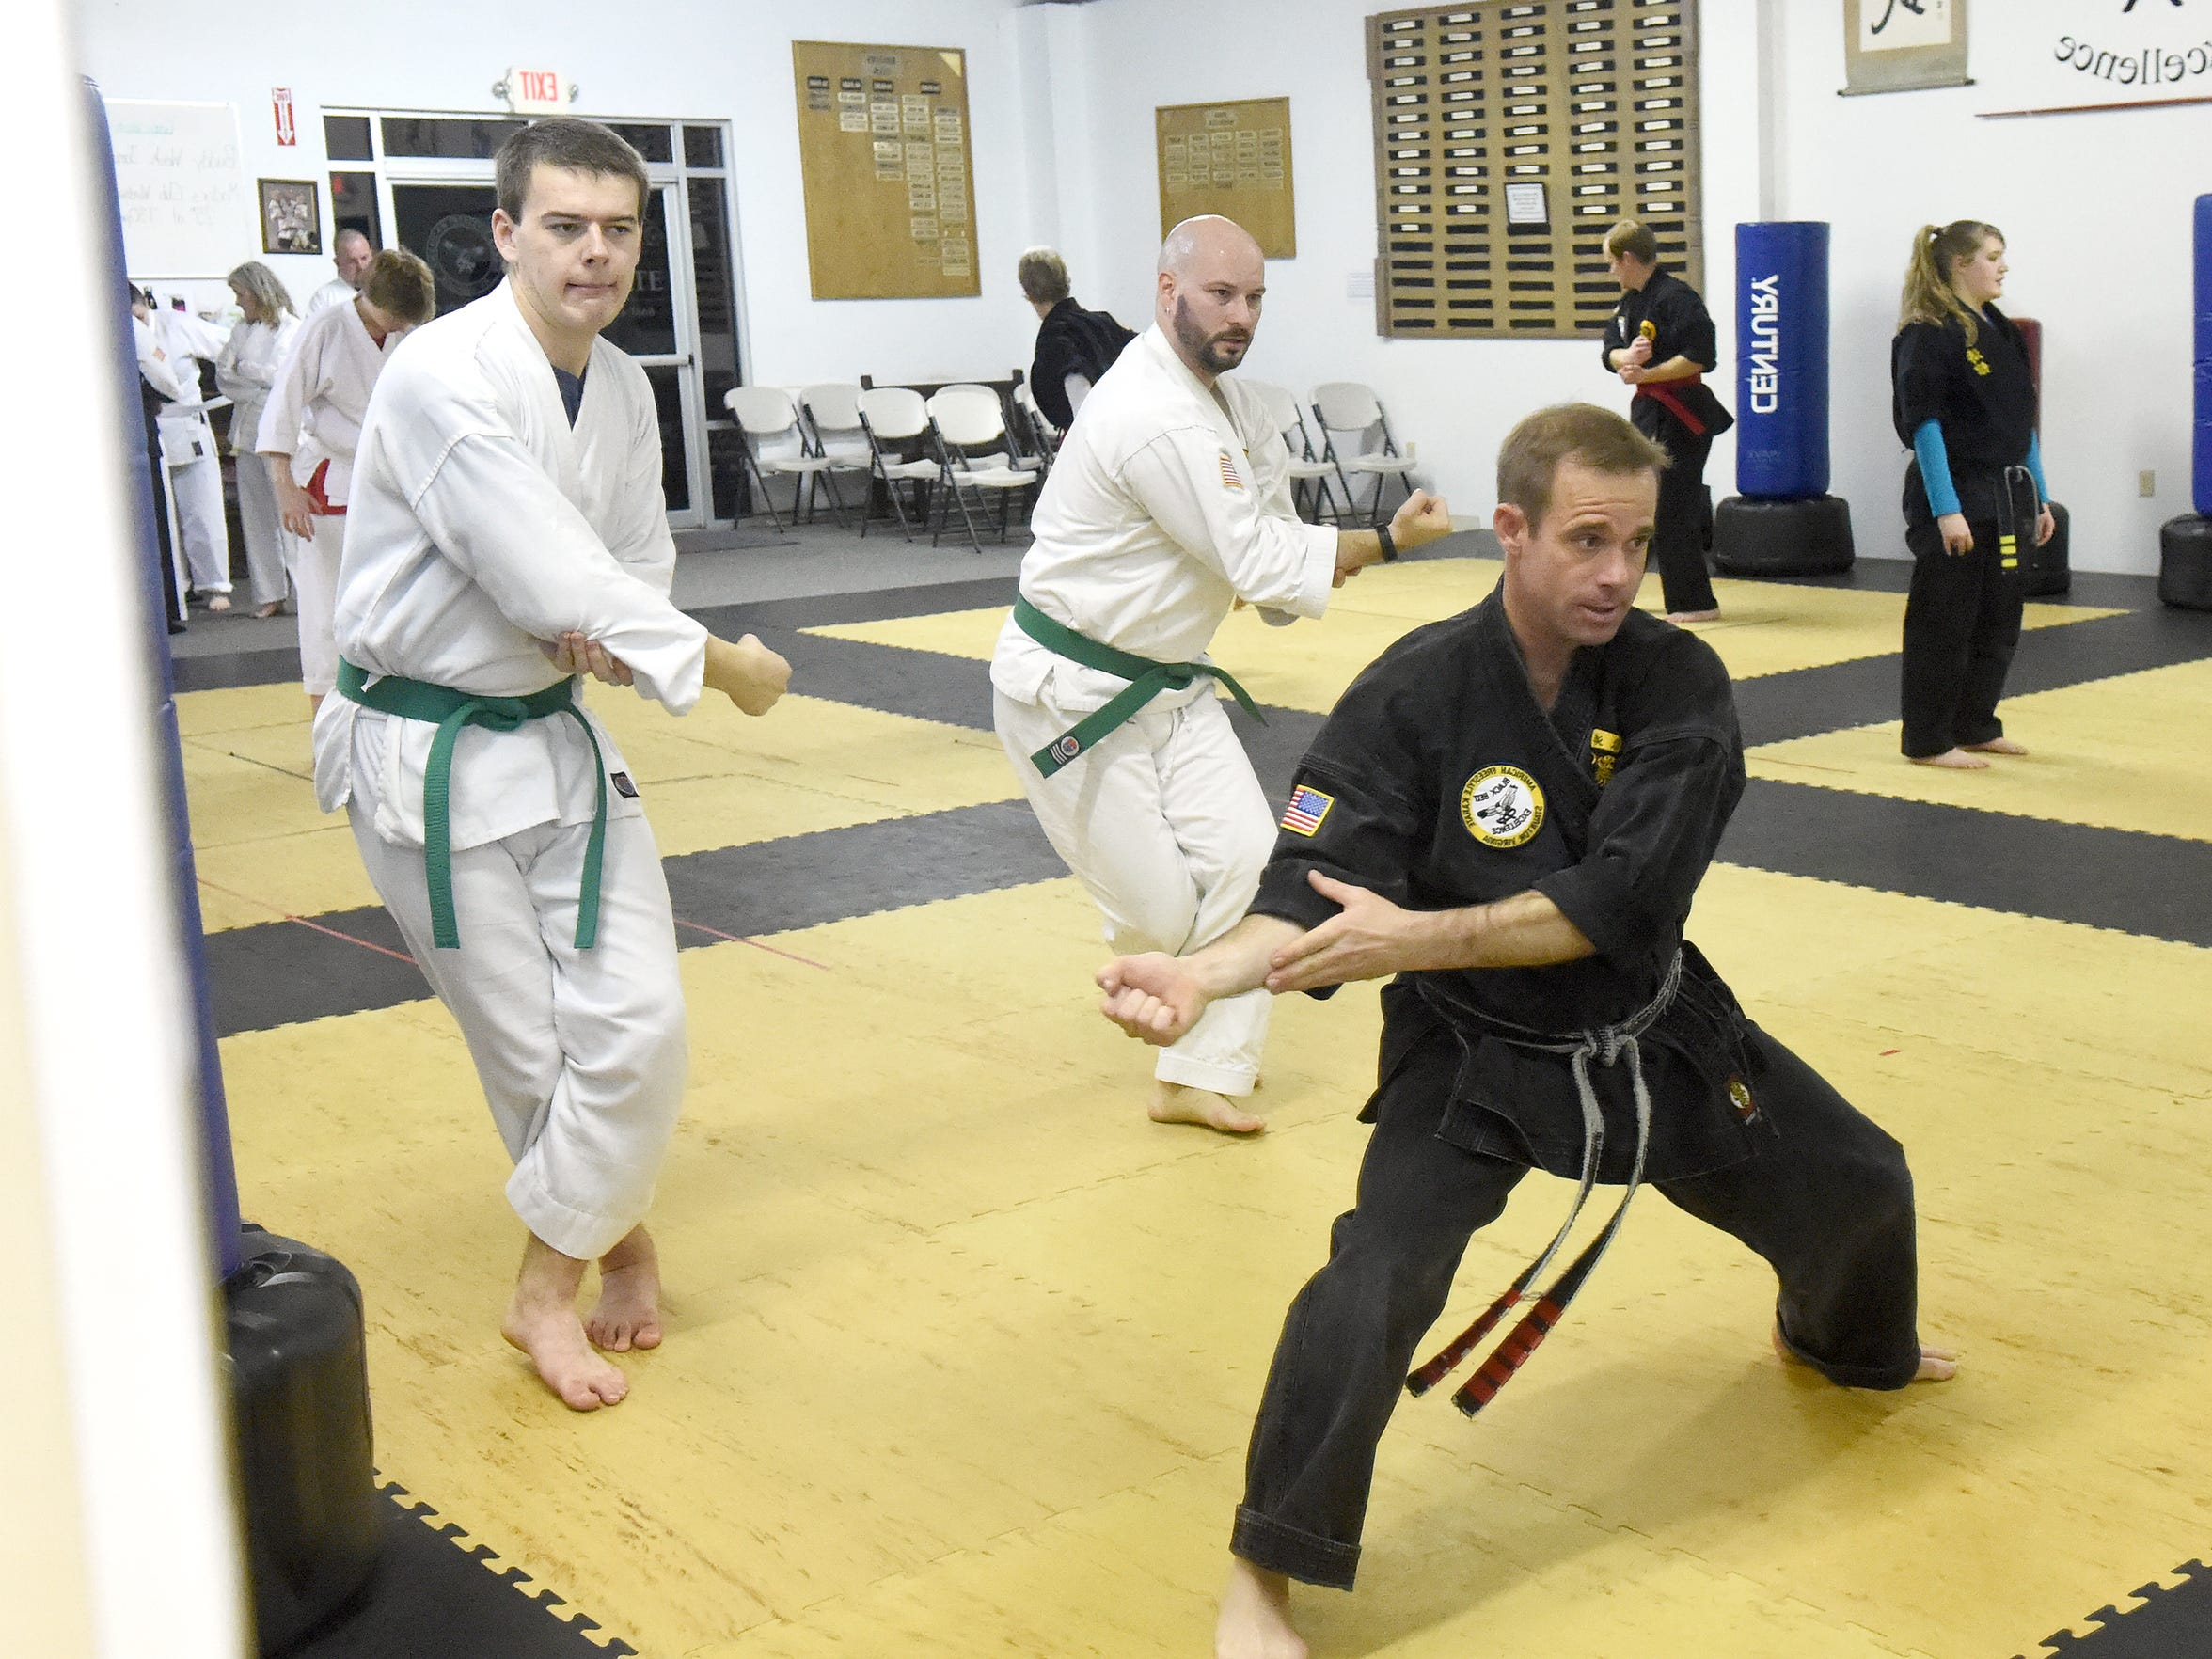 Shotokan green belts Justin Shaw and Jeremy West follow